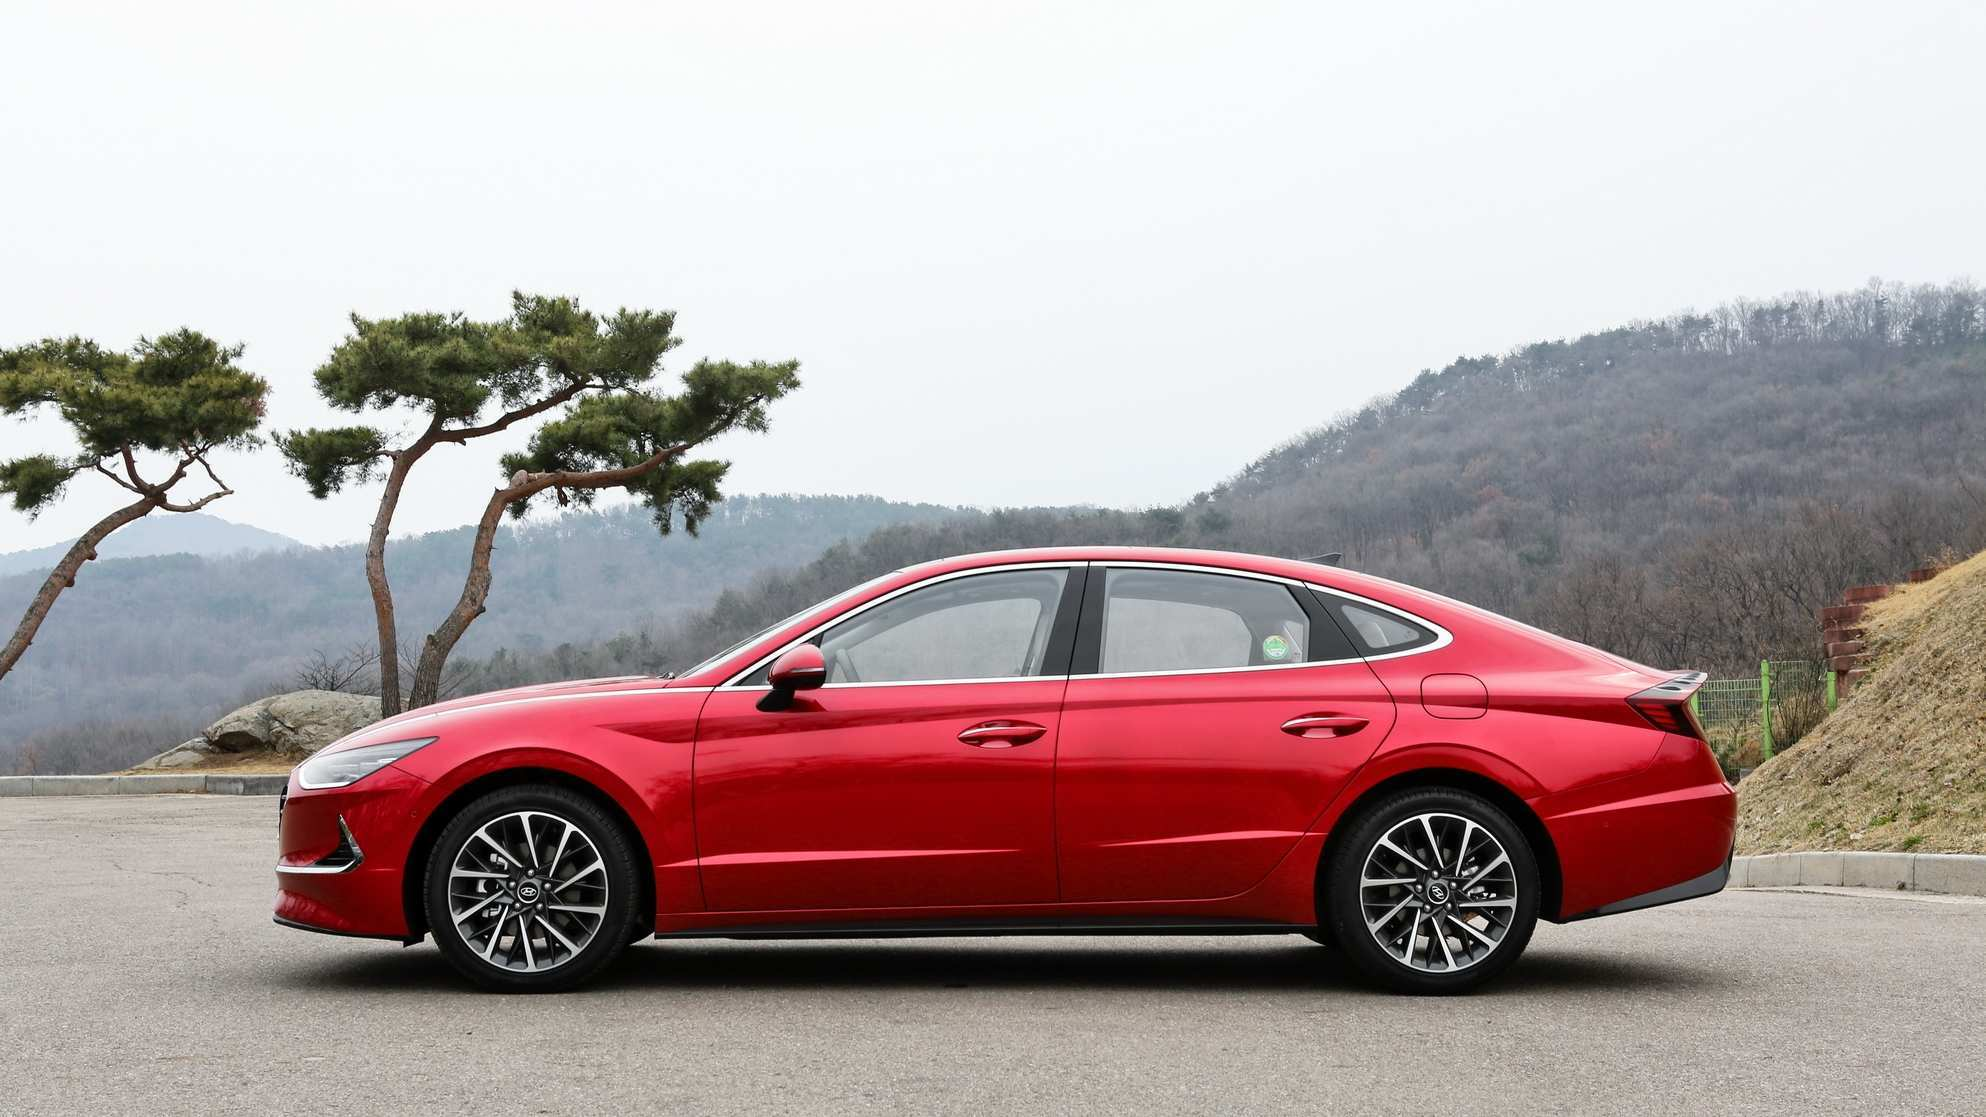 86 The Best Hyundai New Sonata 2020 Pictures